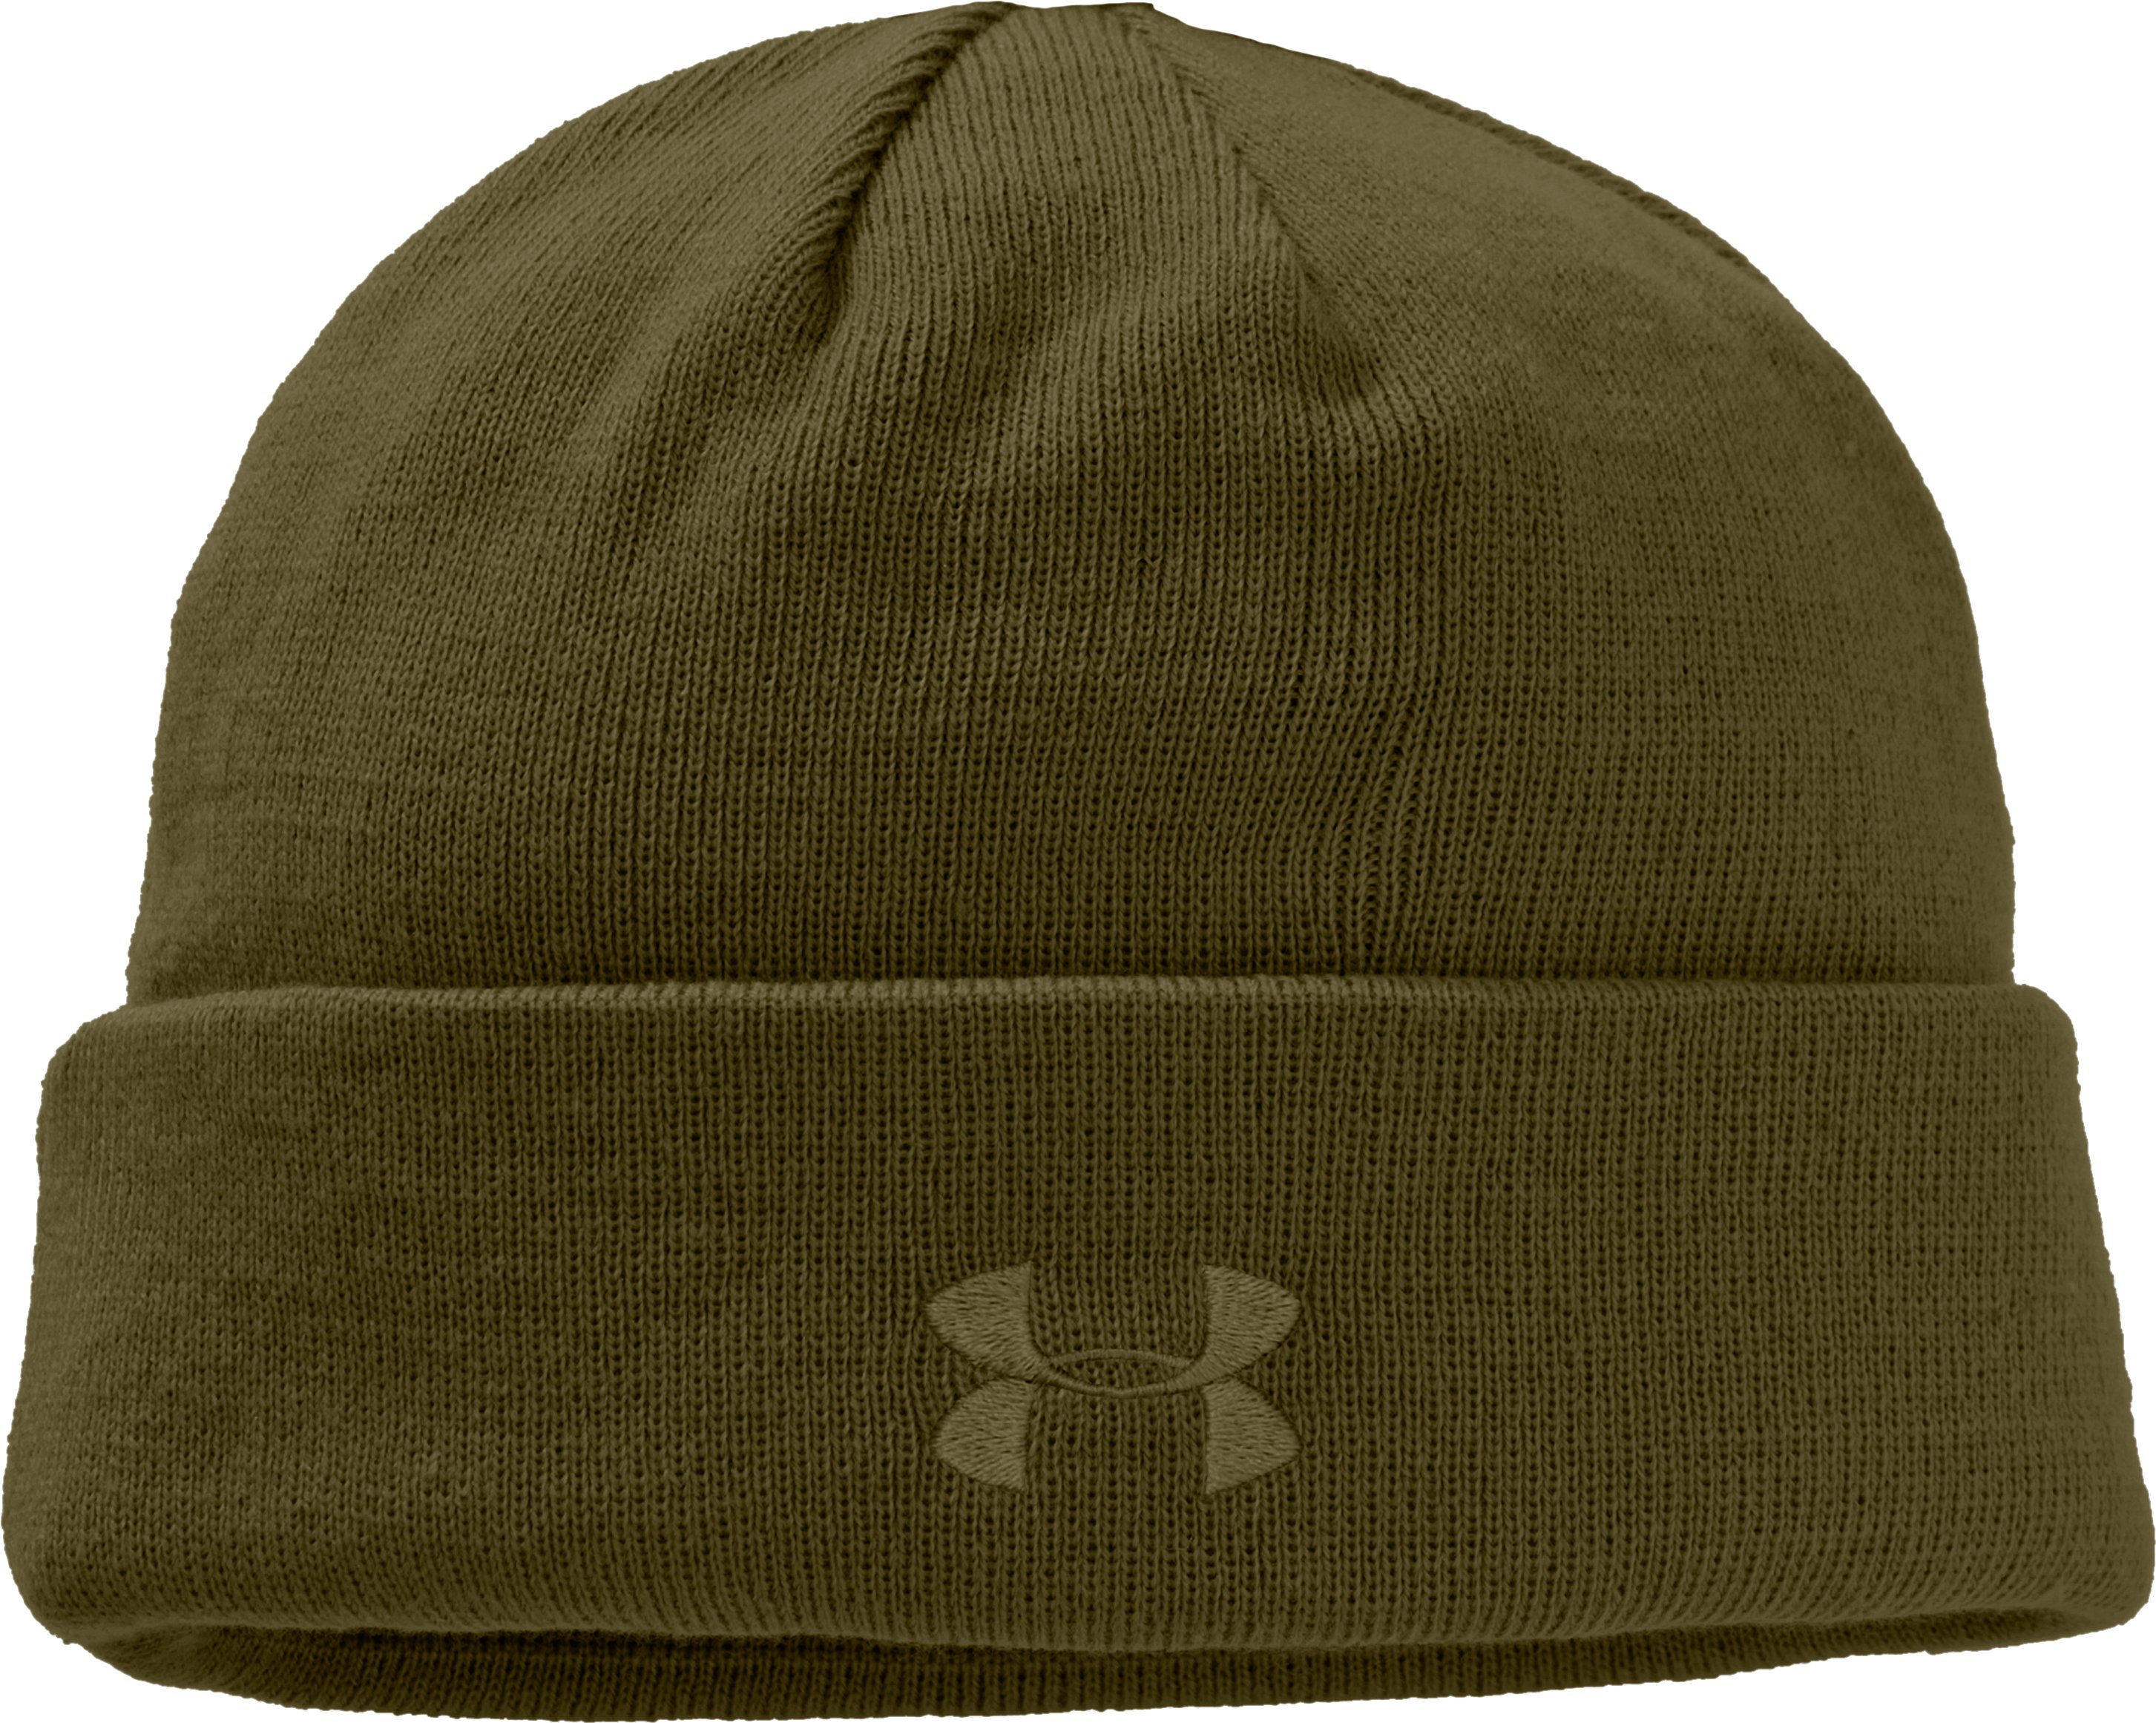 Men's Tactical Stealth Beanie, Marine OD Green